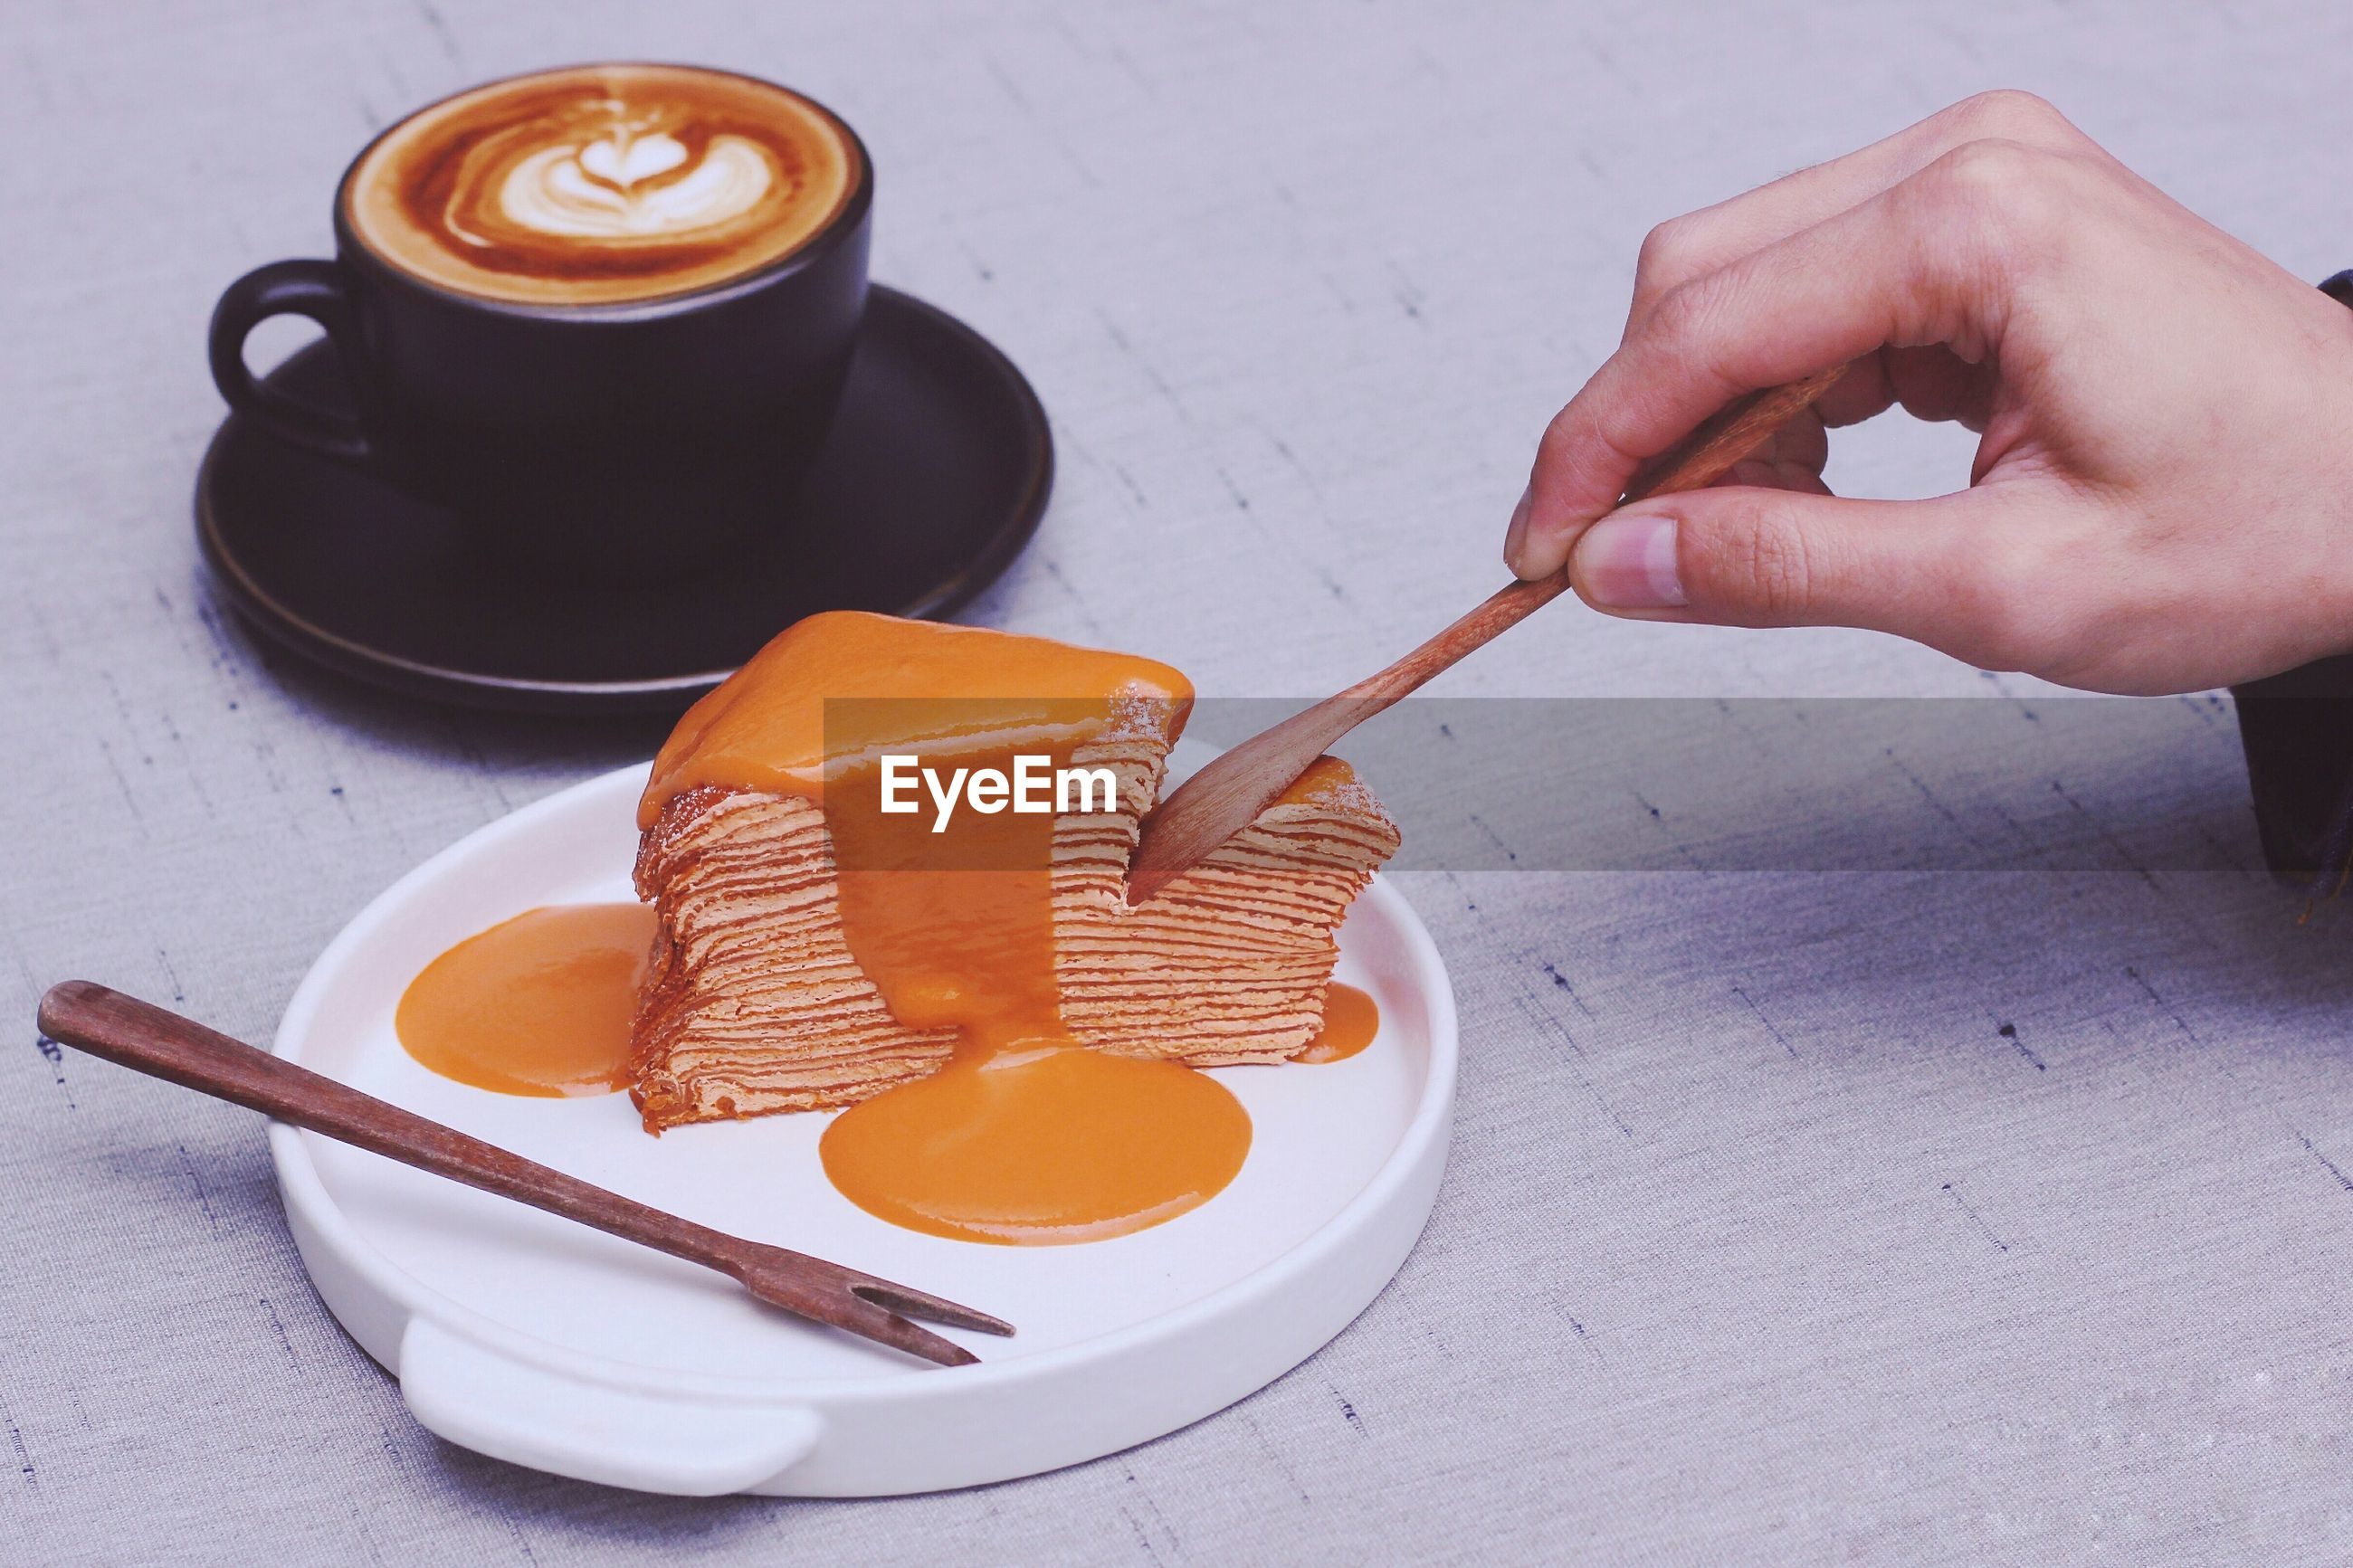 Cropped image of hand cutting dessert with spoon